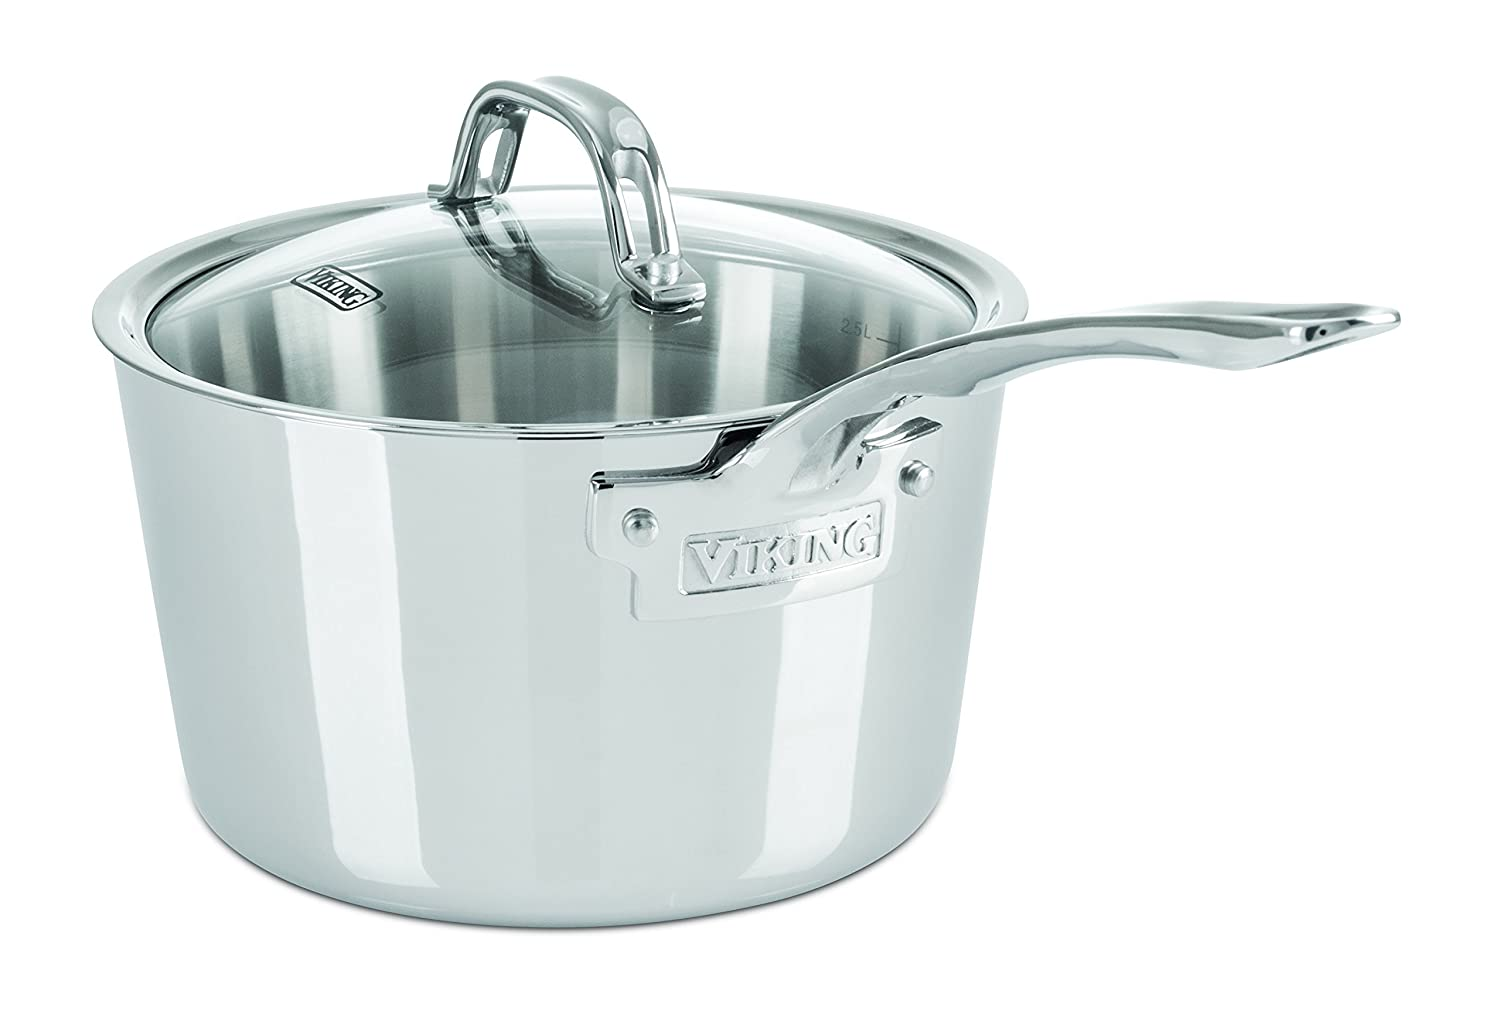 Viking 4013-3003N Contemporary 3-Ply Stainless Steel Soup Pot, 3.4 quart, Silver Viking Culinary